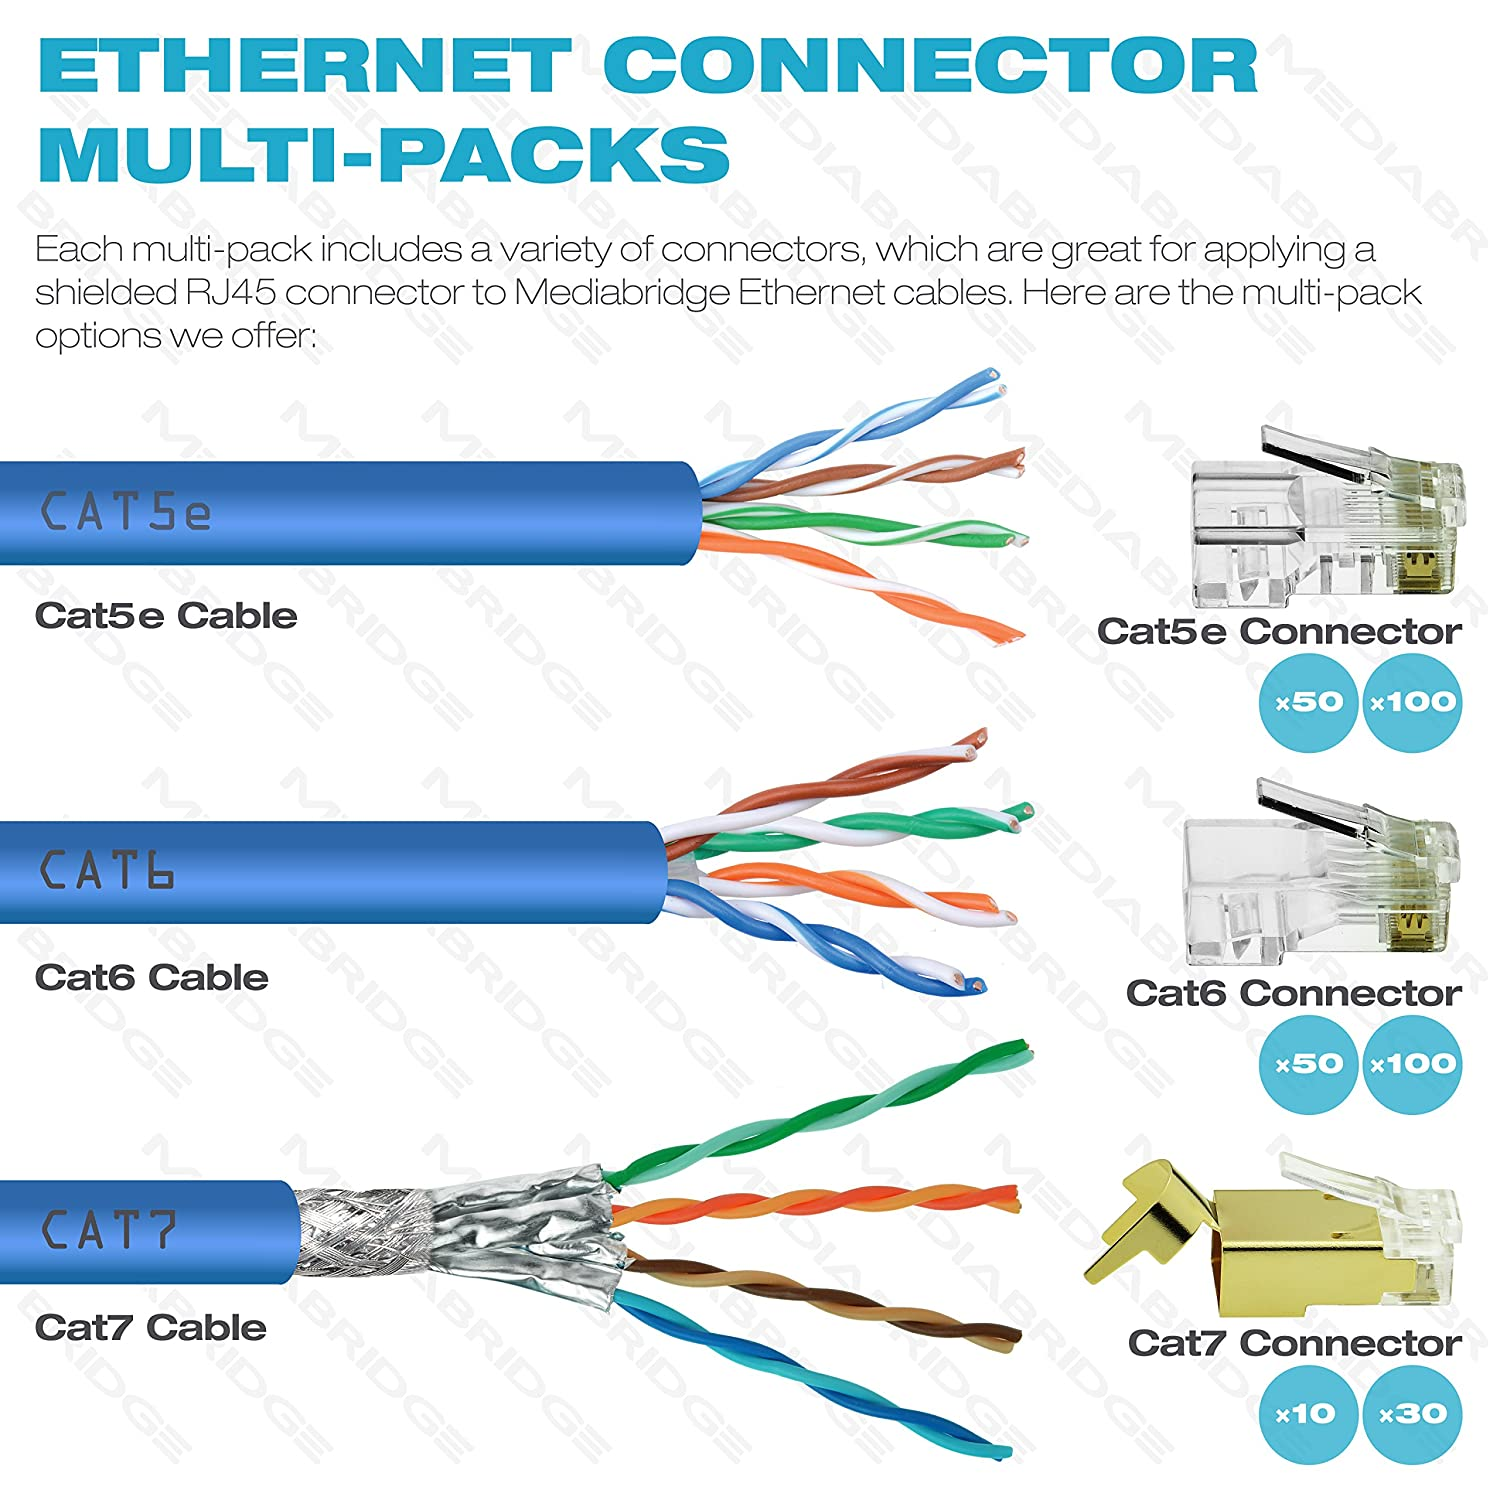 Cat6 Wire Diagram For Rj45 Connector Mediabridge Cat7 Gold Shielded Plug Ethernet Cable 8p8c 50um 30 Pack Part 51p C7 30pk Computers